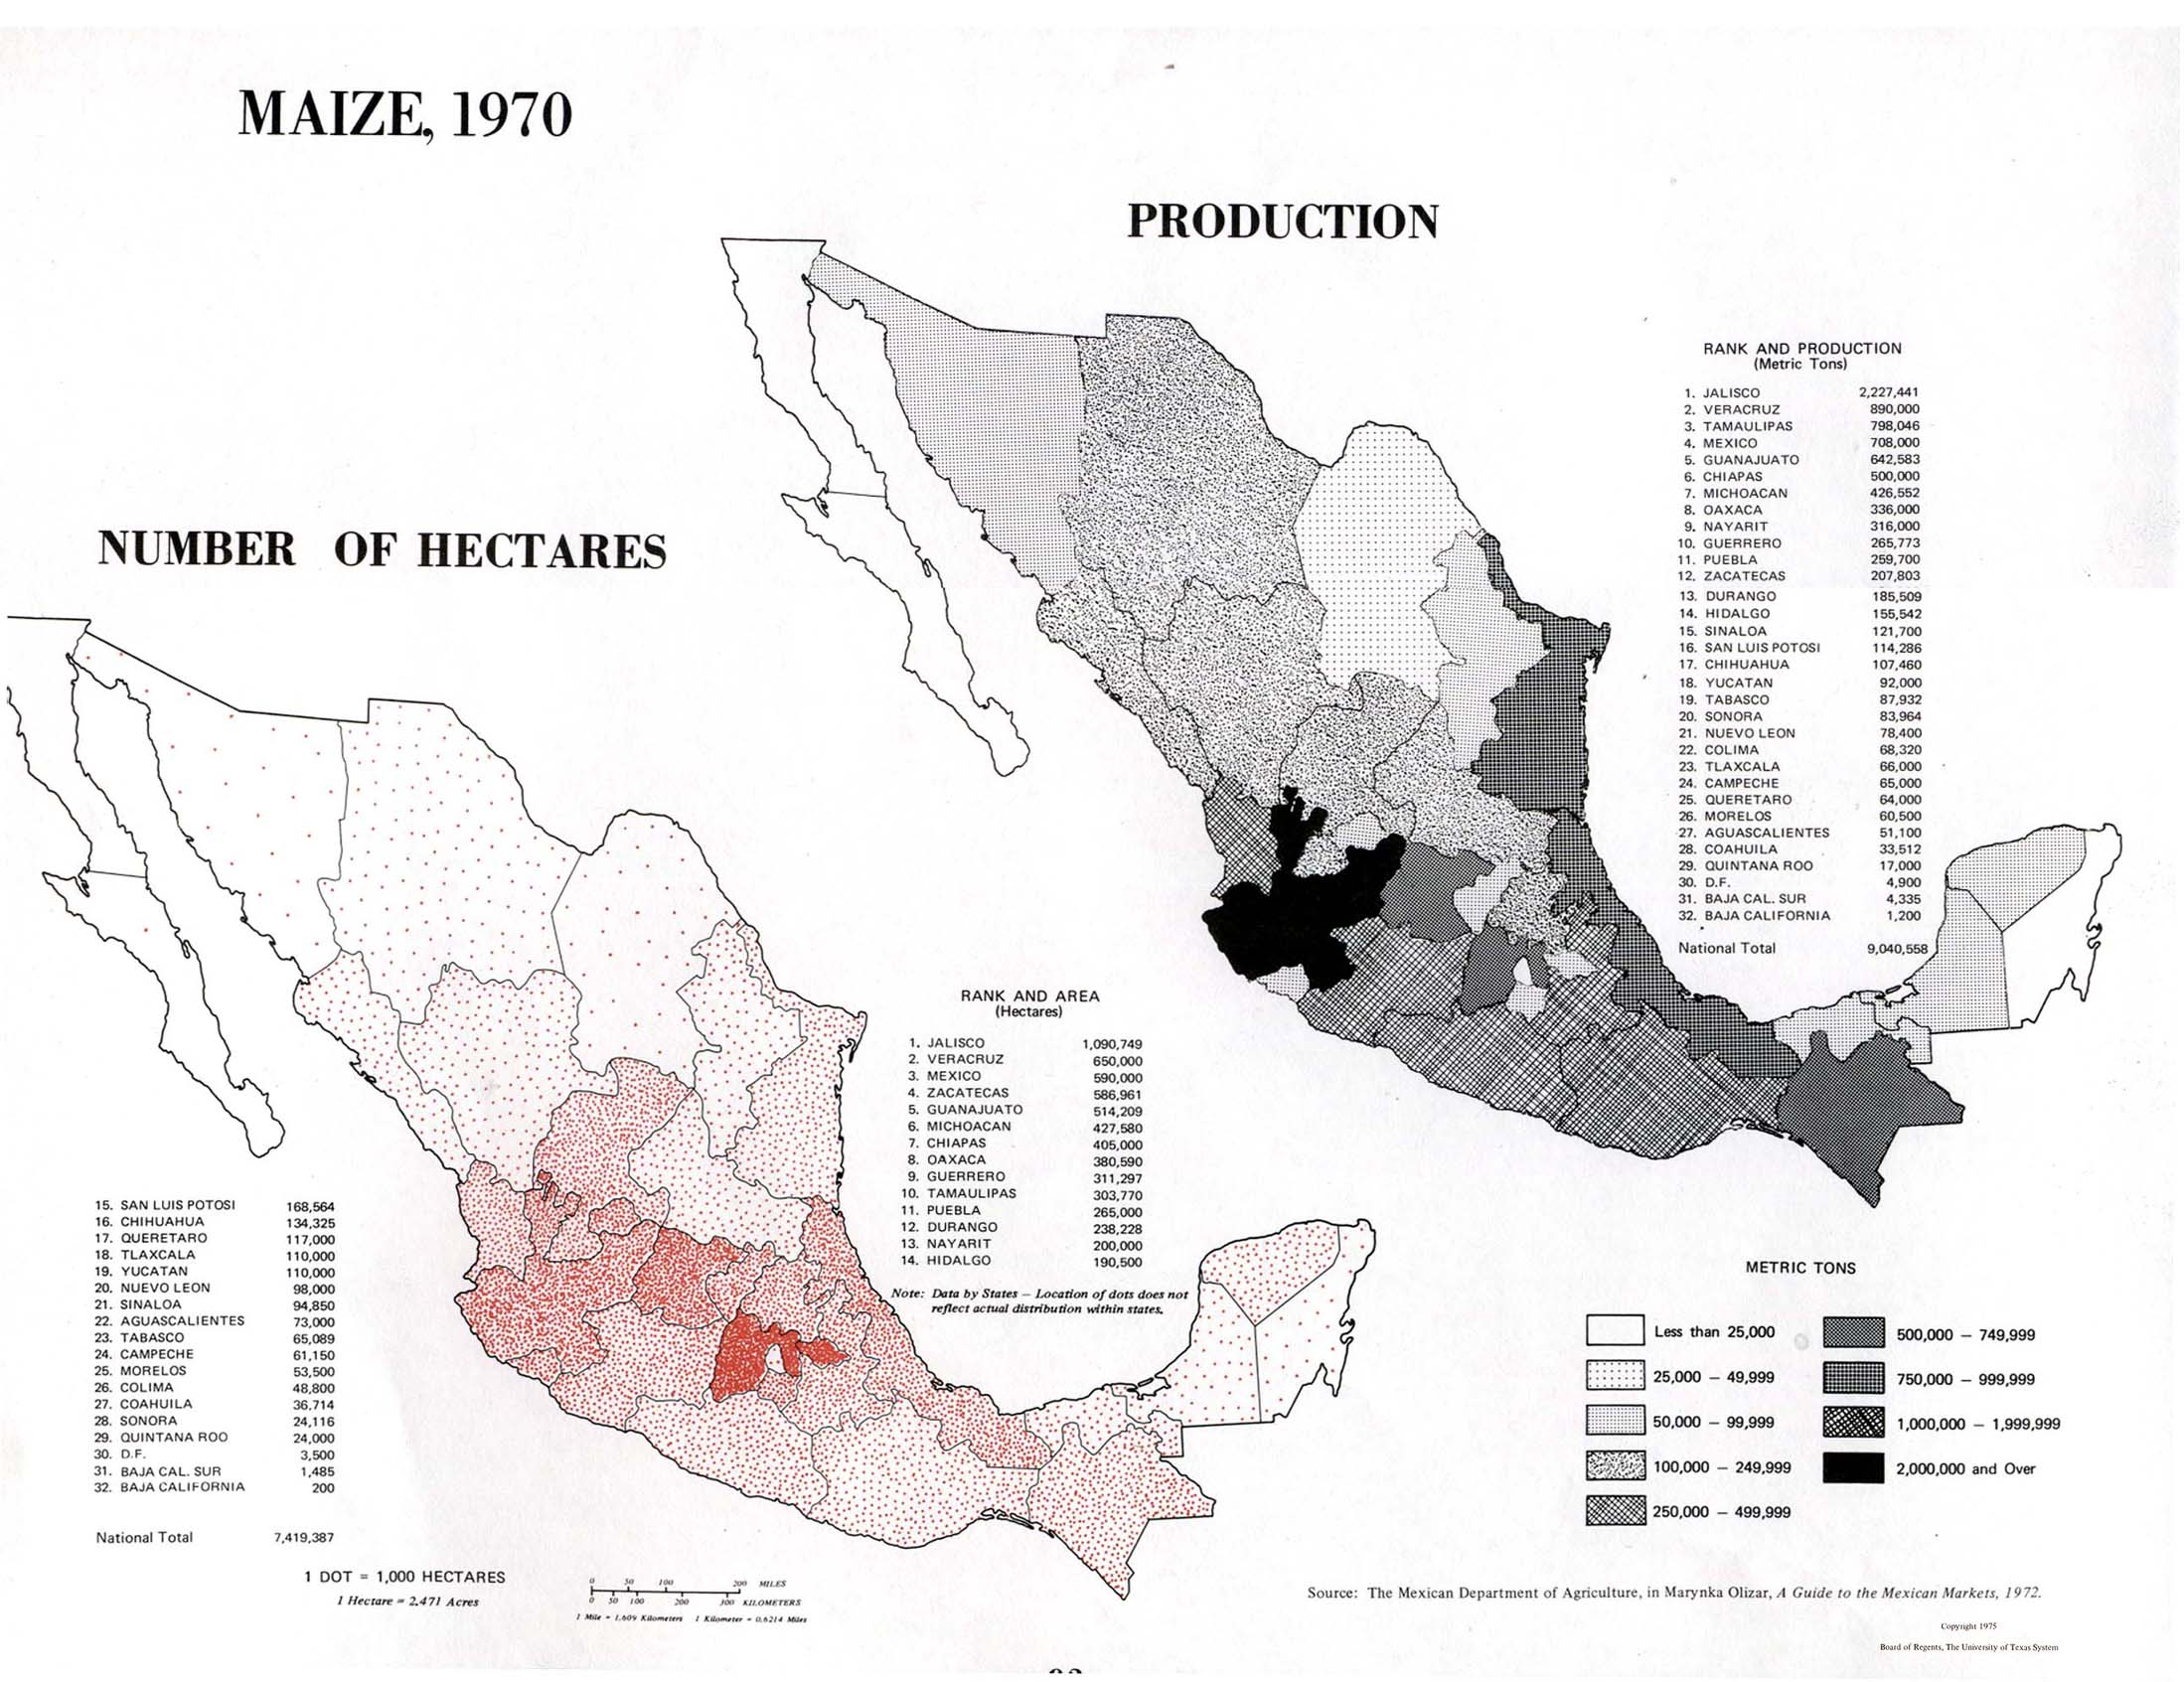 Maize Production in Mexico 1970